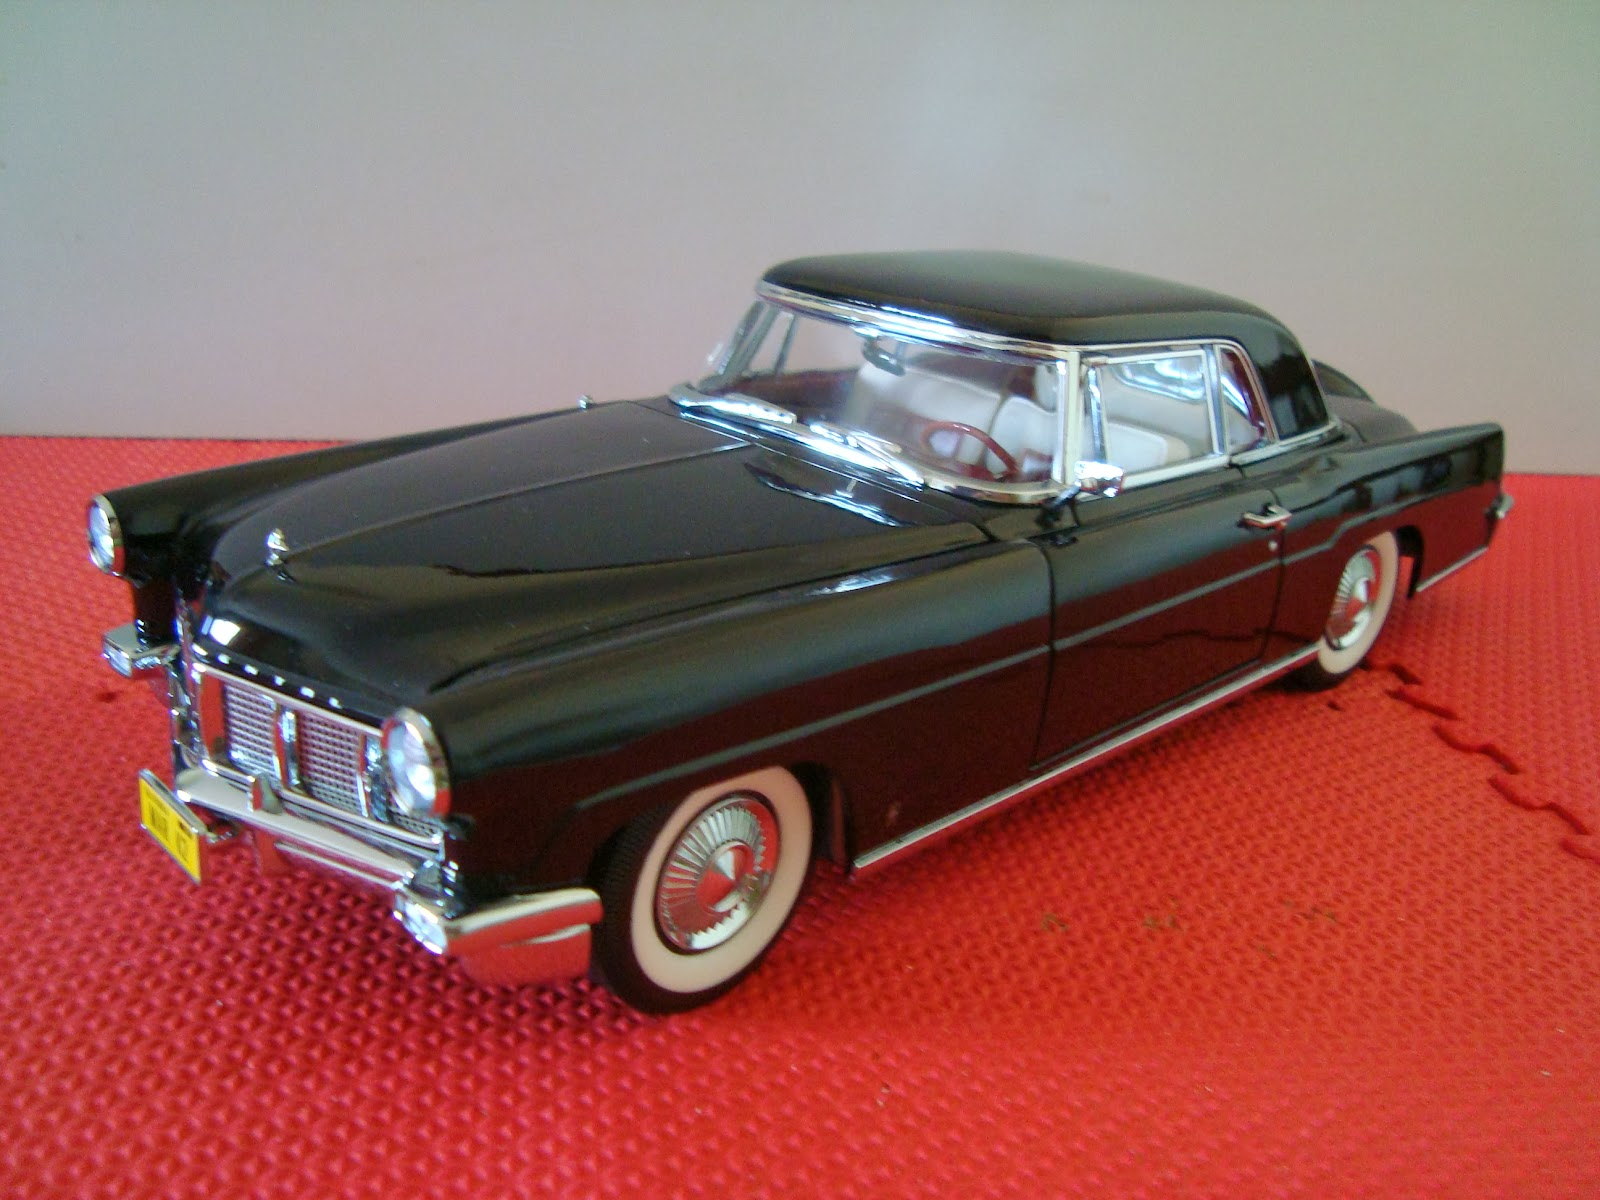 diecast american car nutz a classic 1956 lincoln continental mark ii. Black Bedroom Furniture Sets. Home Design Ideas